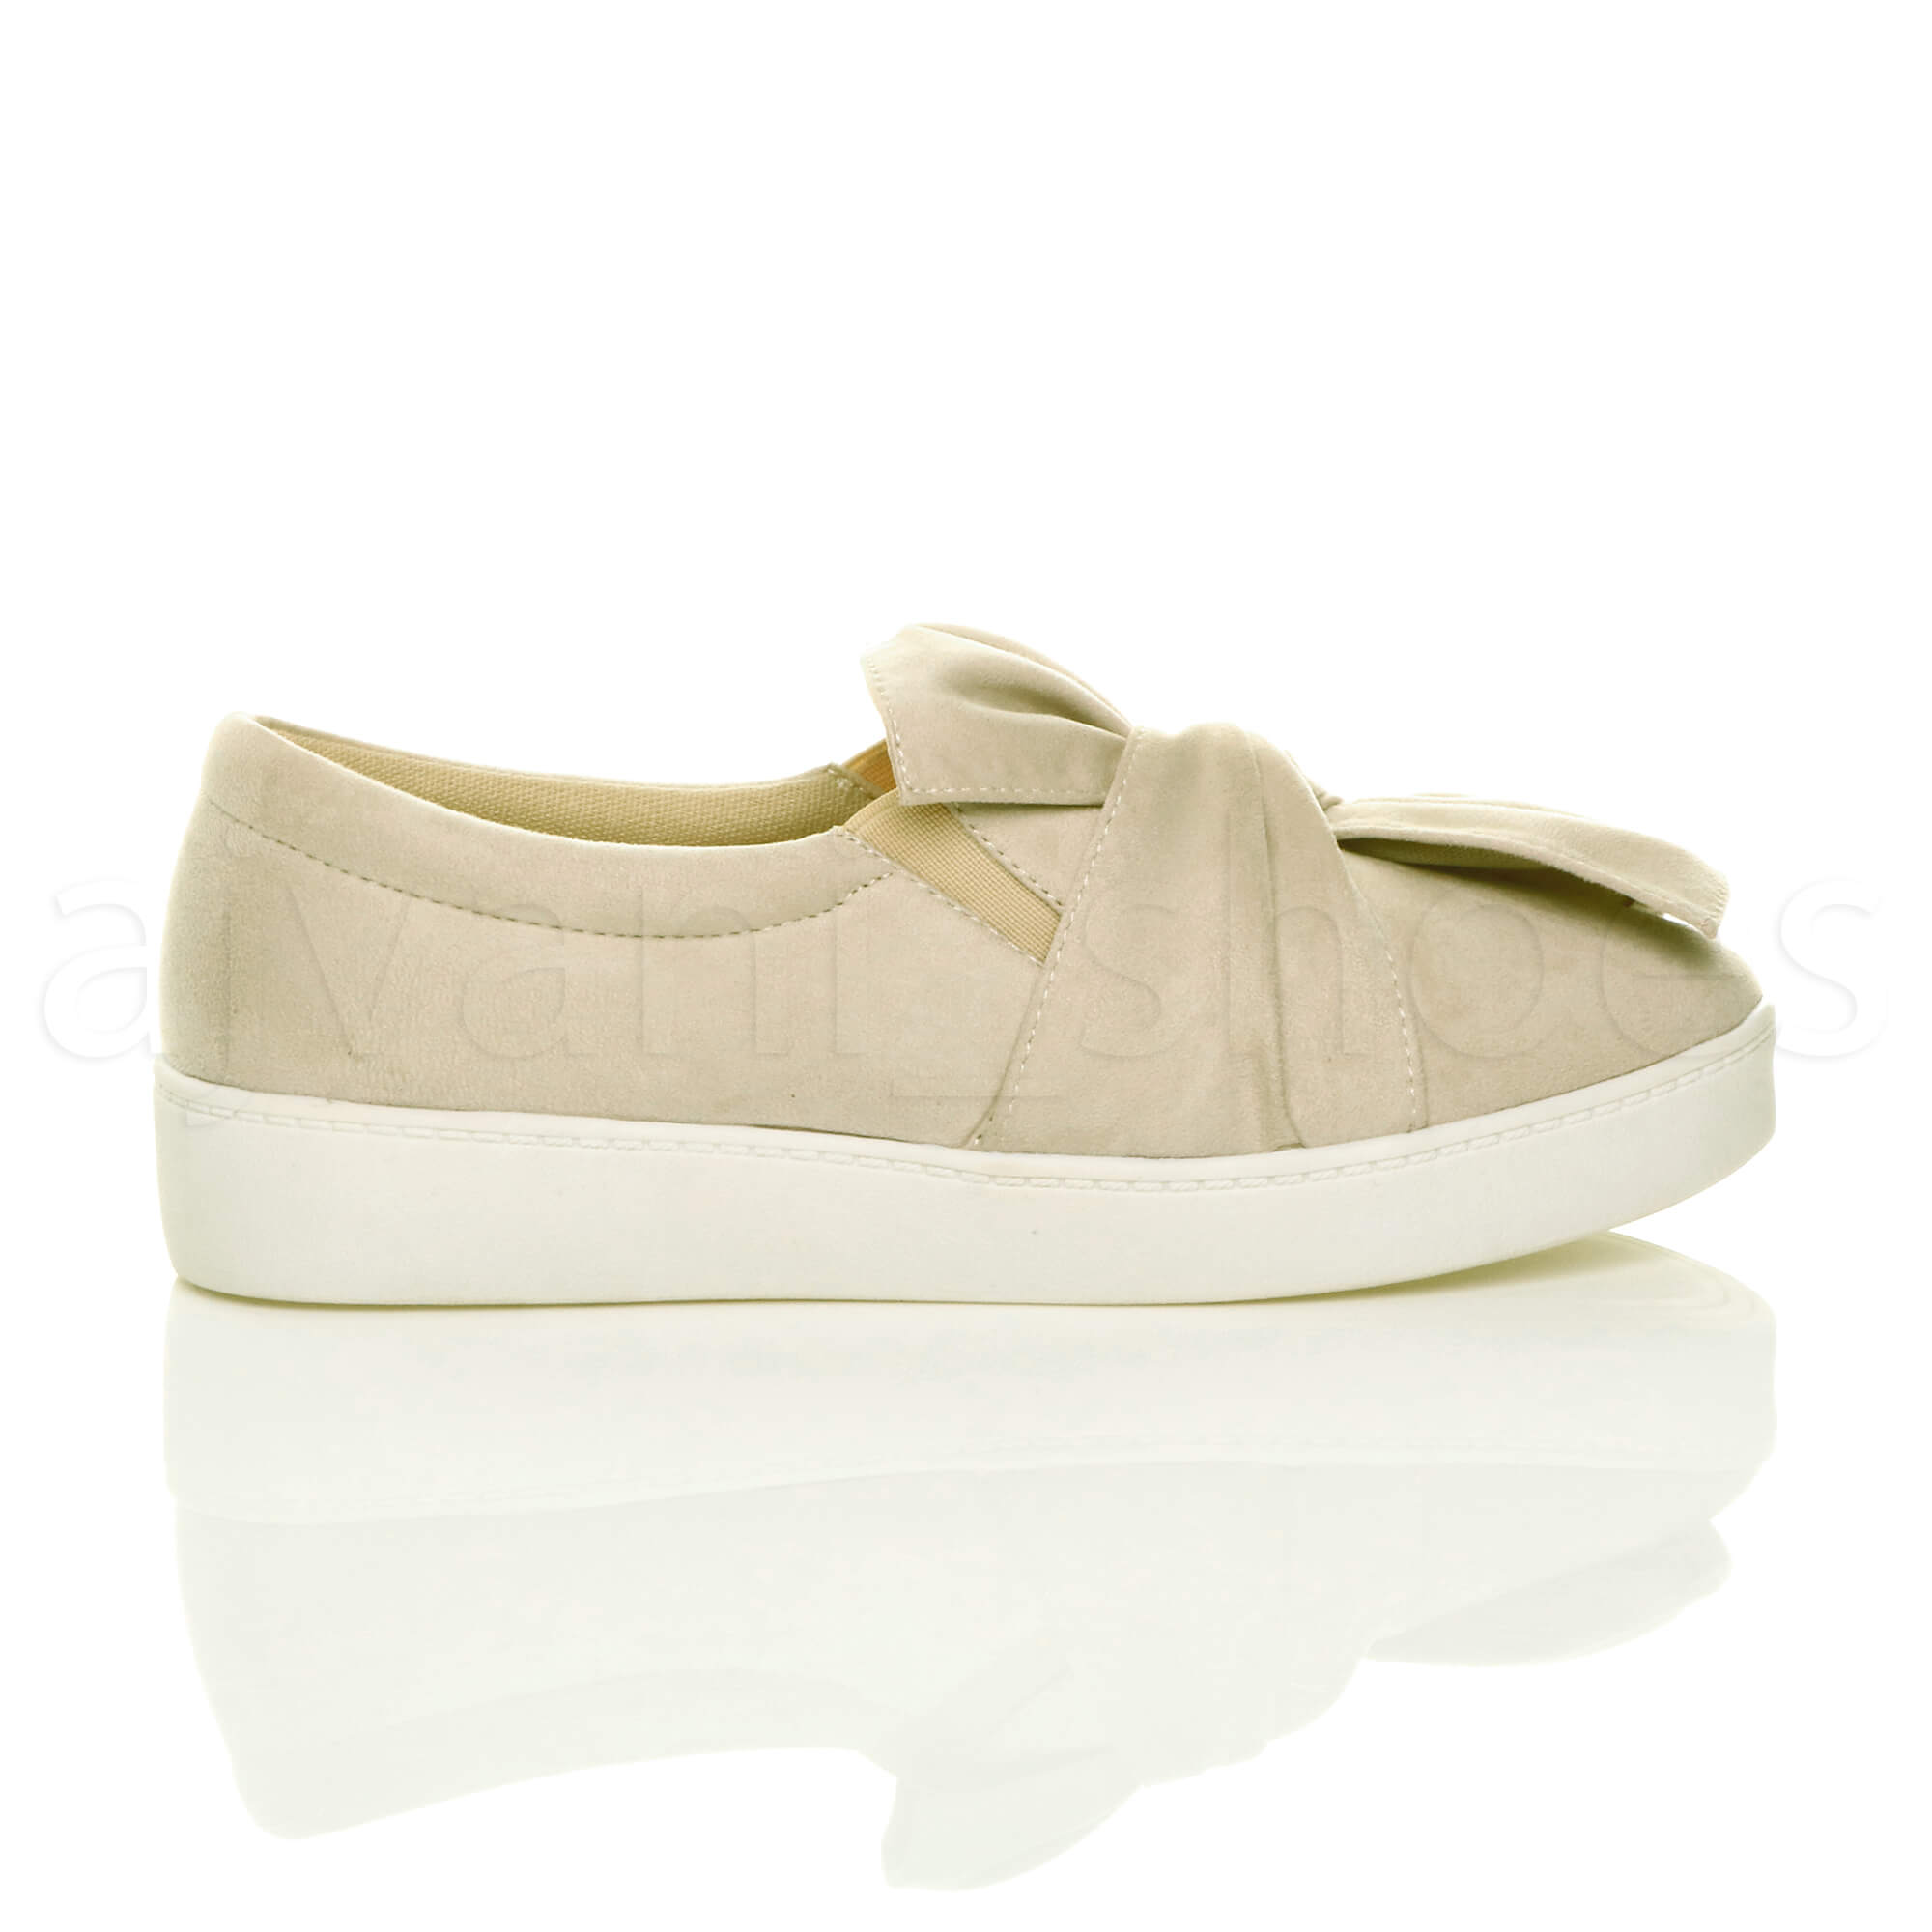 WOMENS-LADIES-FLAT-BOW-KNOT-SLIP-ON-CASUAL-SMART-PLIMSOLES-TRAINERS-PUMPS-SIZE